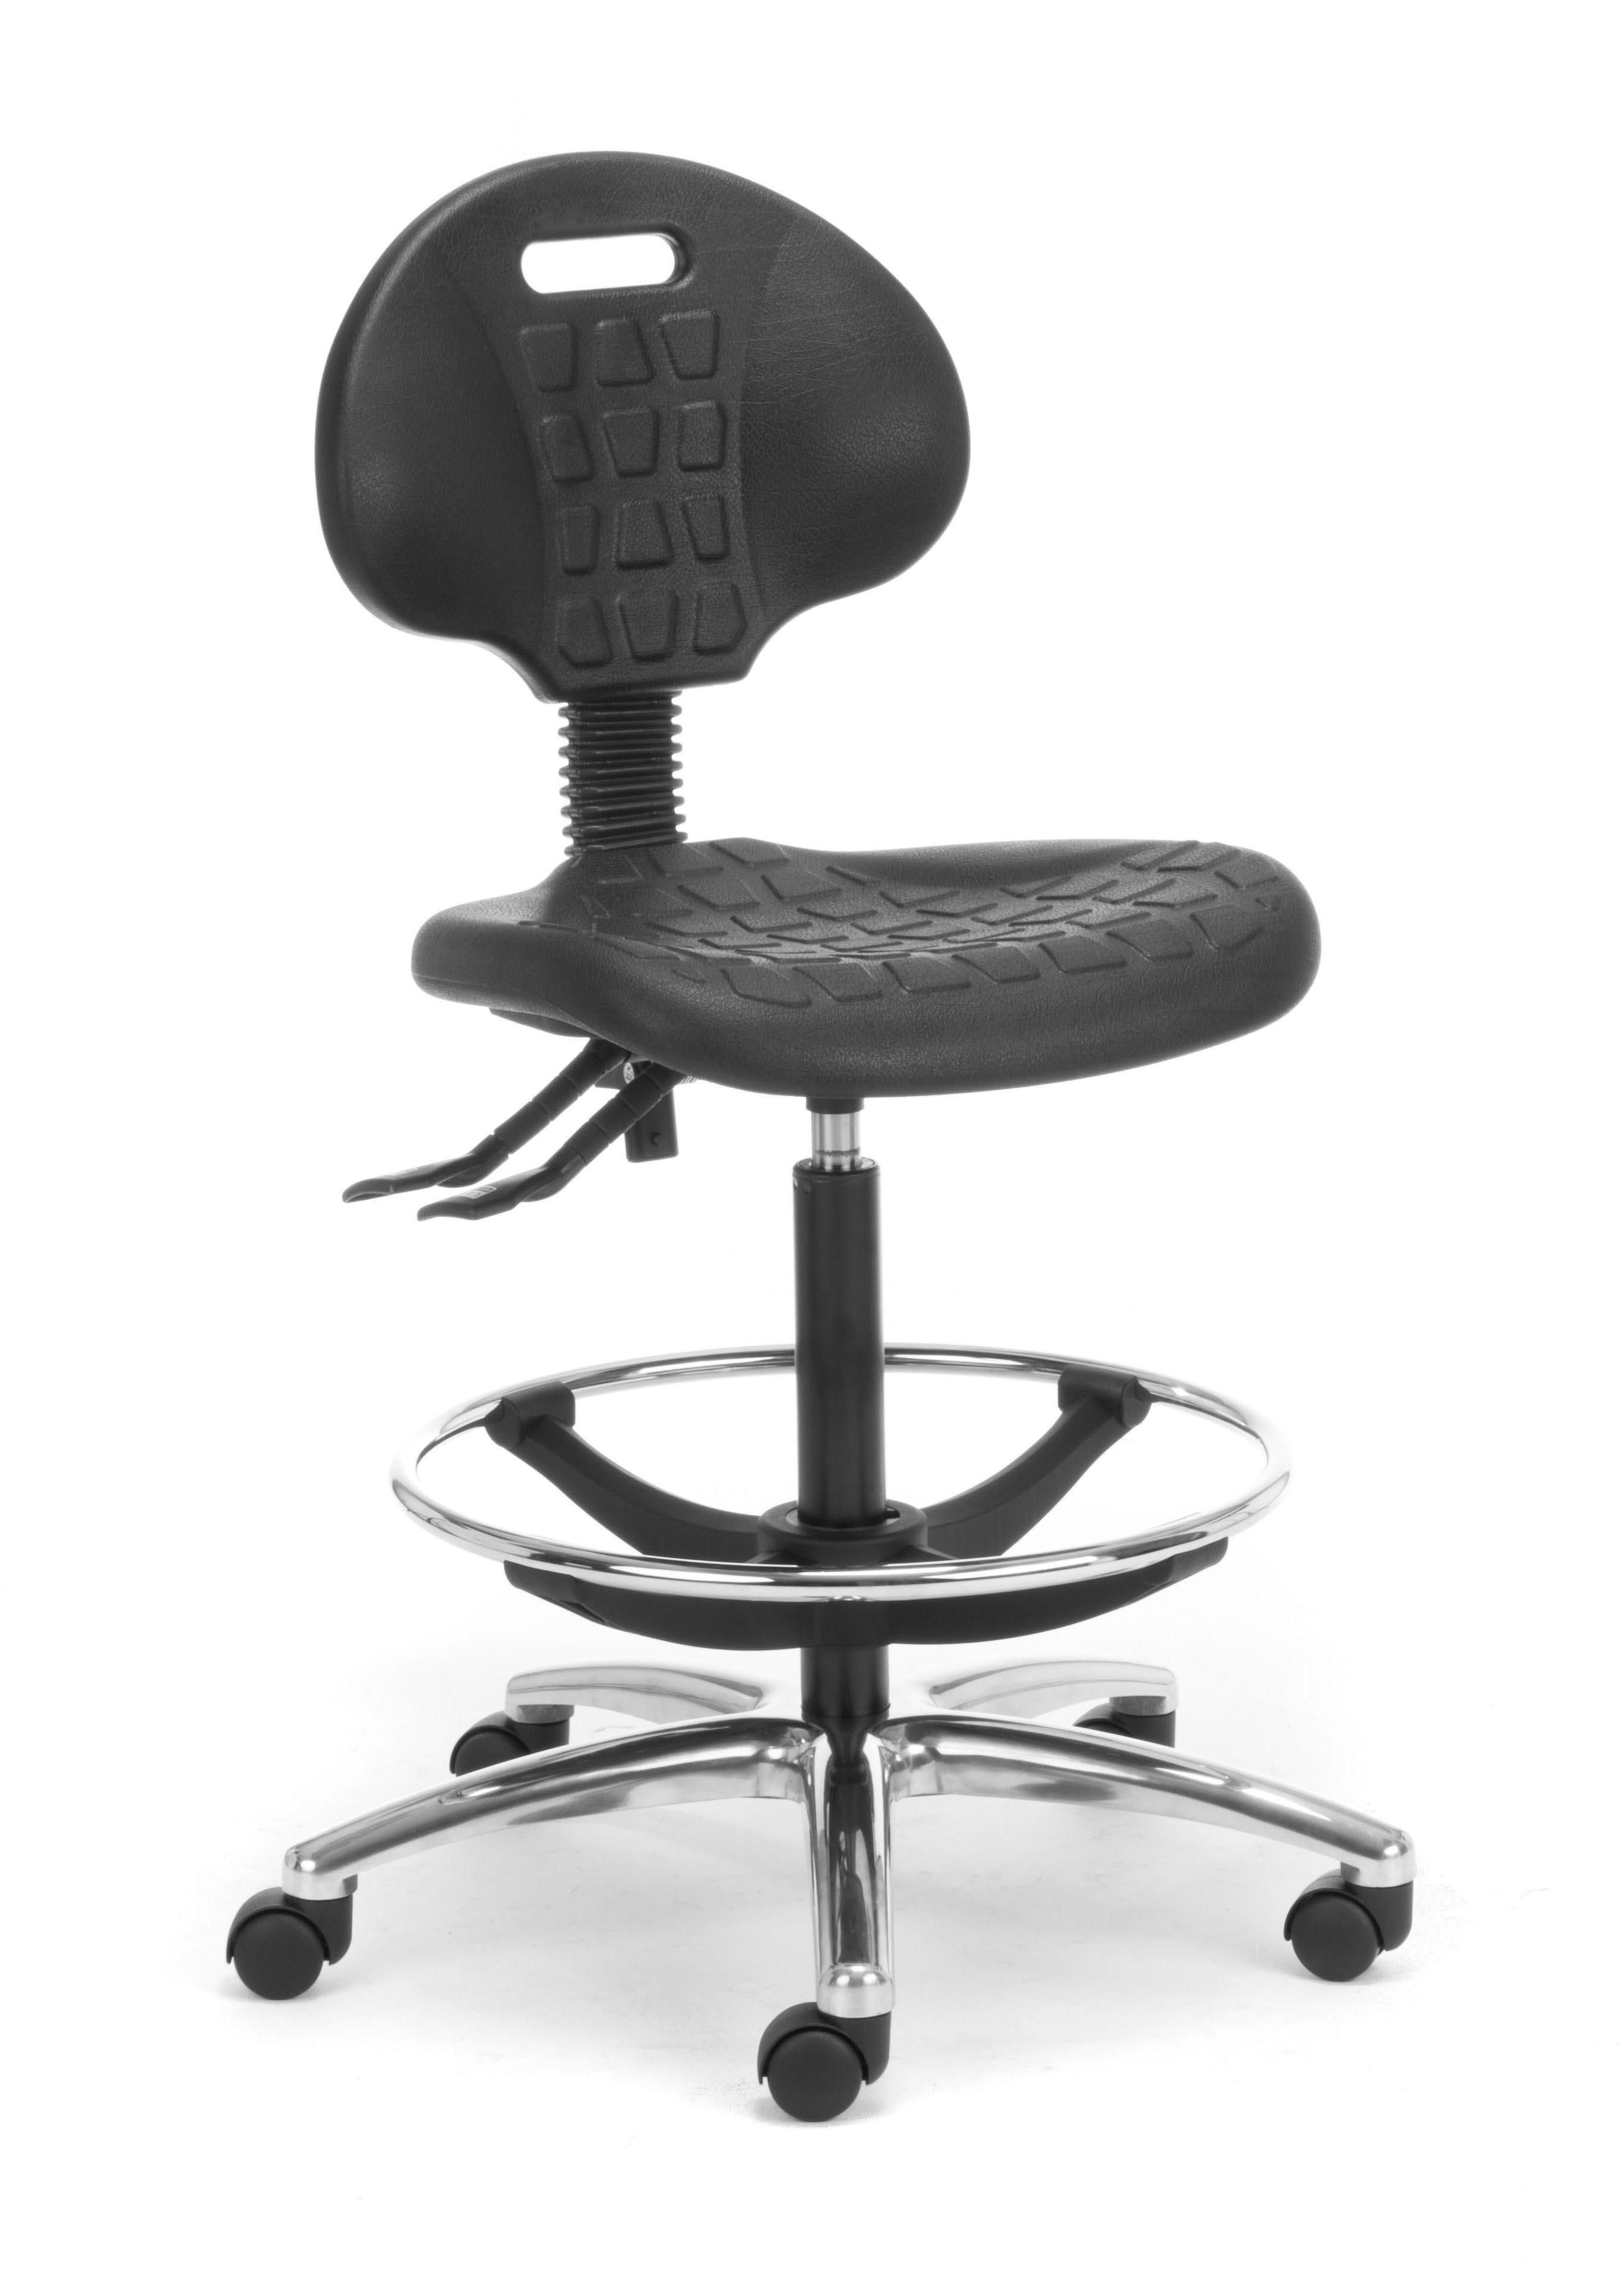 Lab Tech chair - AFRDI Certified